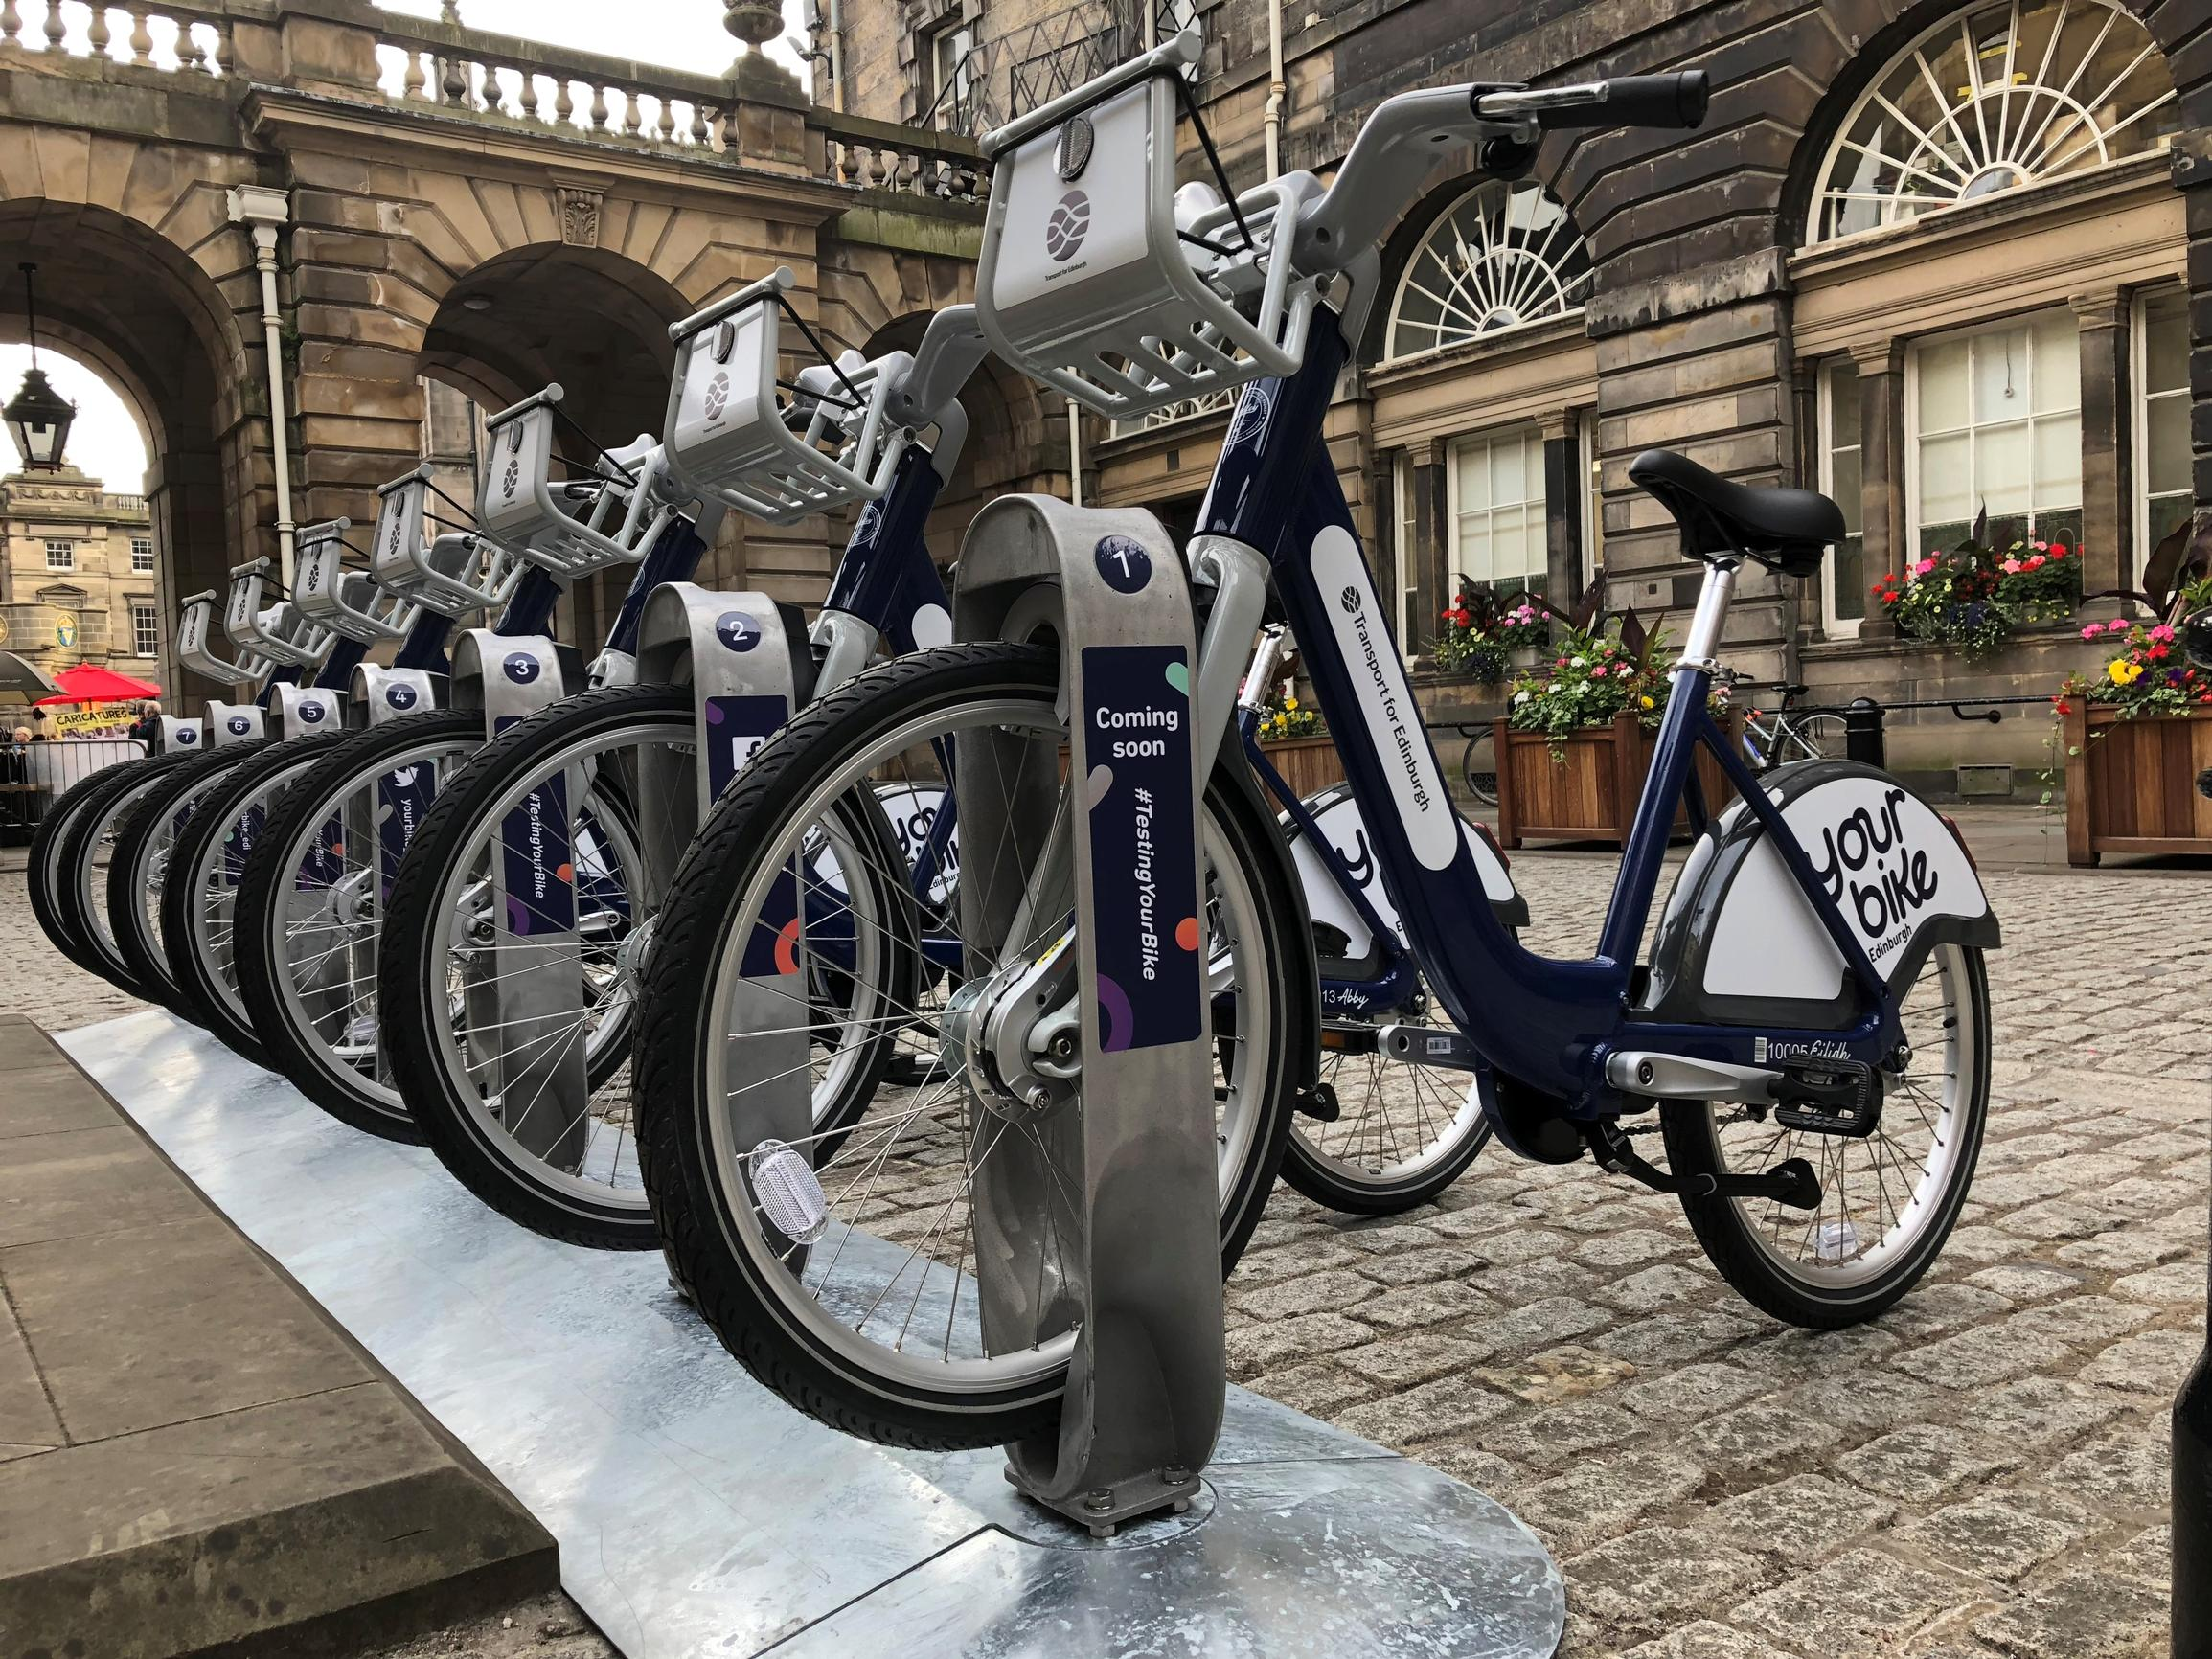 The Your Bike scheme will use `virtual` geo-fenced bike parking stations alongside physical stations